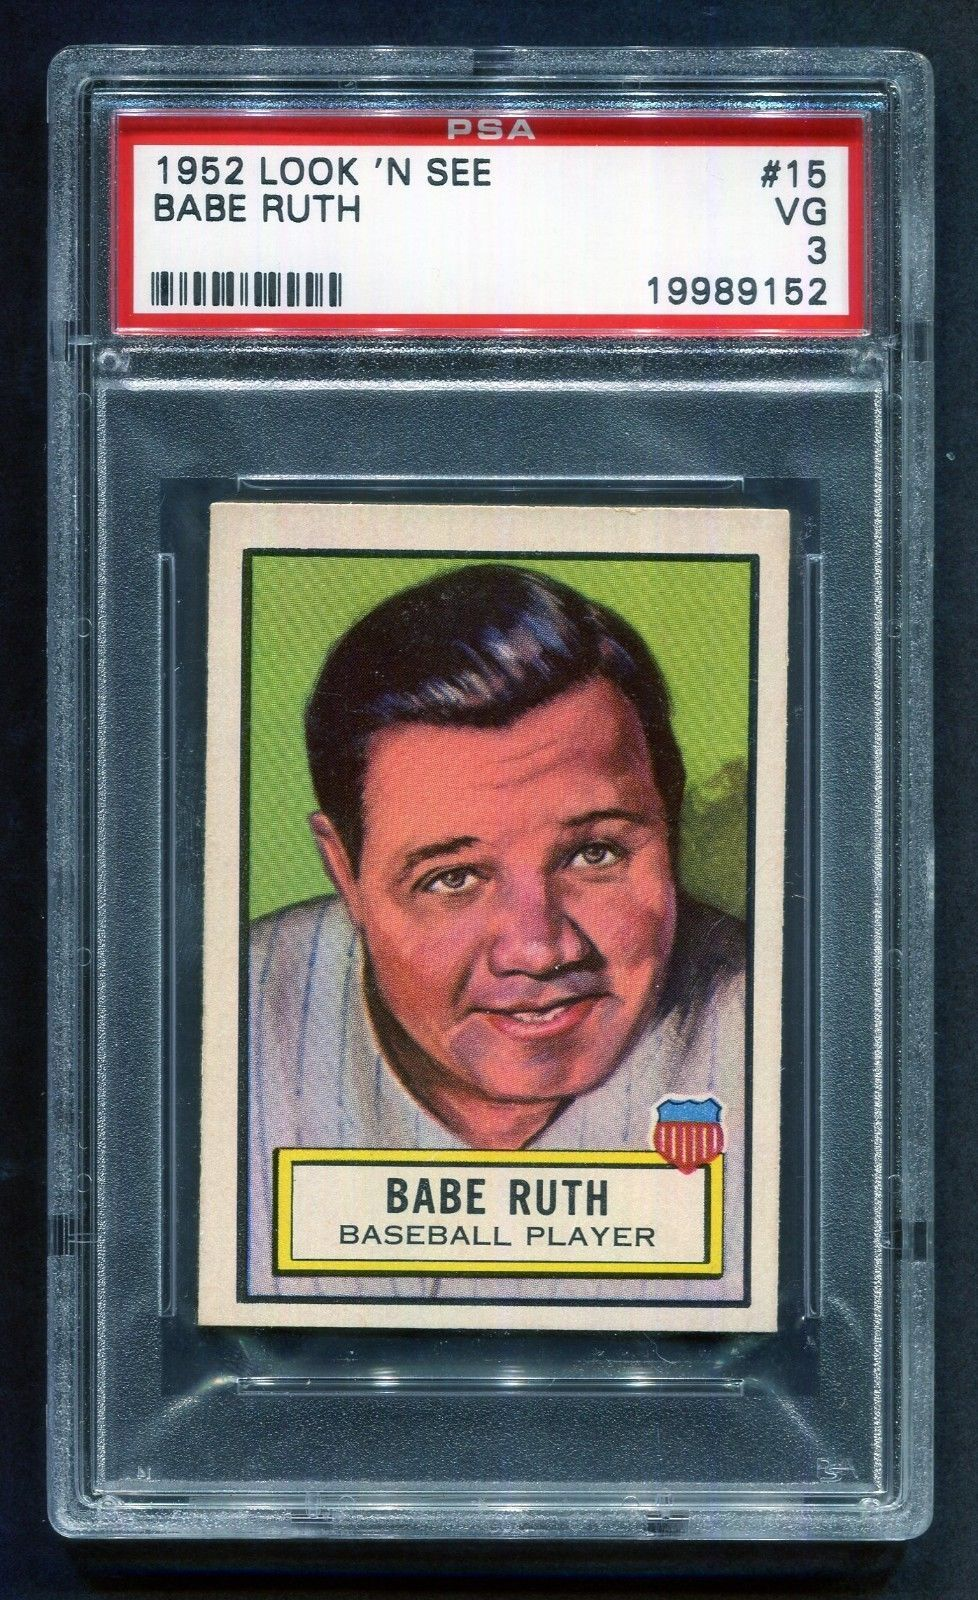 1952 topps look n see 15 babe ruth psa 3 vg baberuth